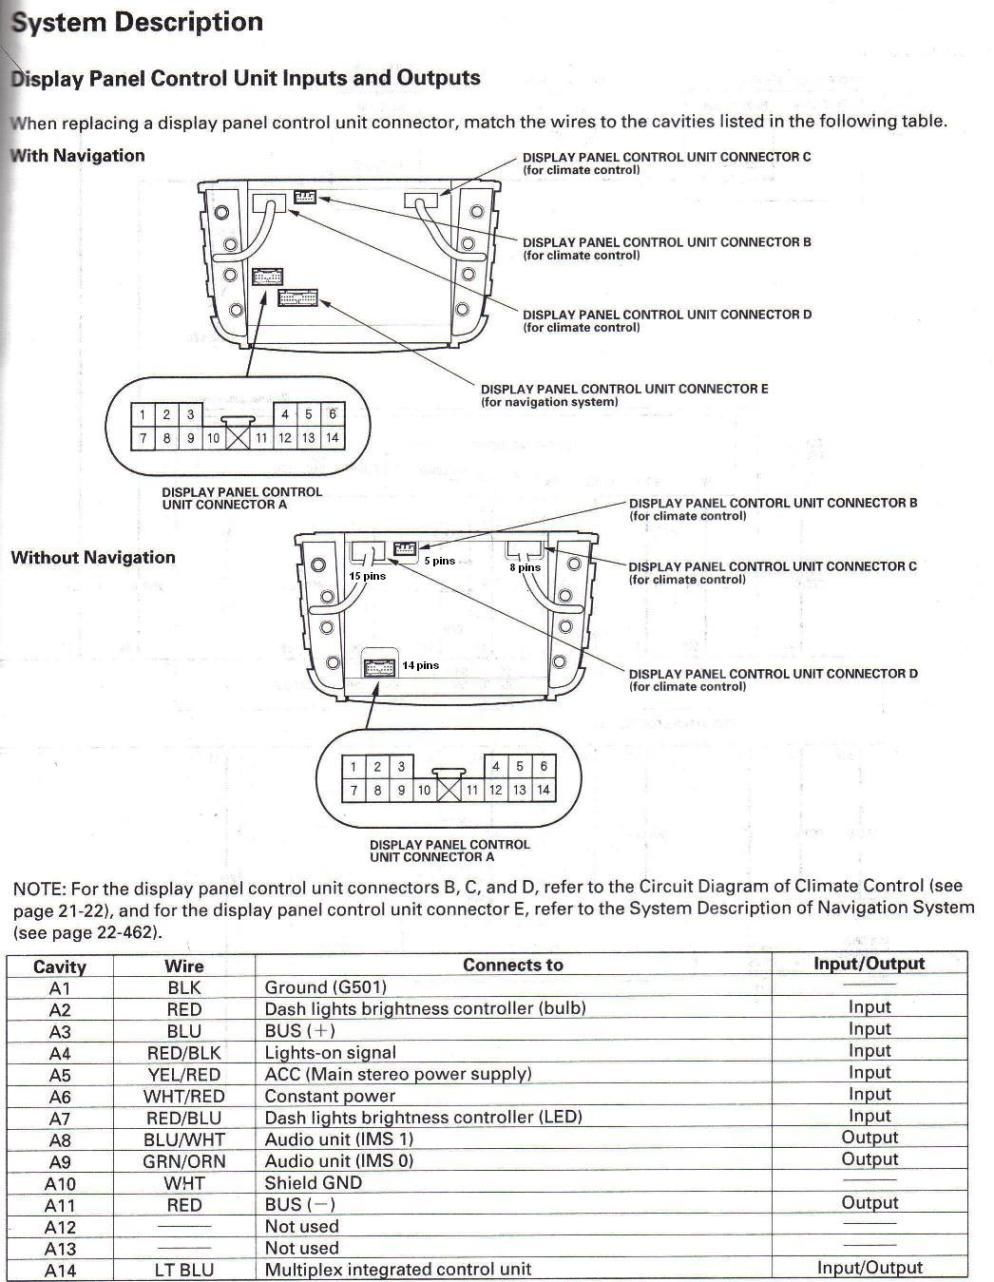 80 2004_non_navi_wiring_diagram_dc35447c211715fc1ded8e2e3a92beb519bc6f9f 04 '06 non navi to '07 '08 non navi radio display swap acurazine 2005 acura rsx radio wiring diagram at crackthecode.co